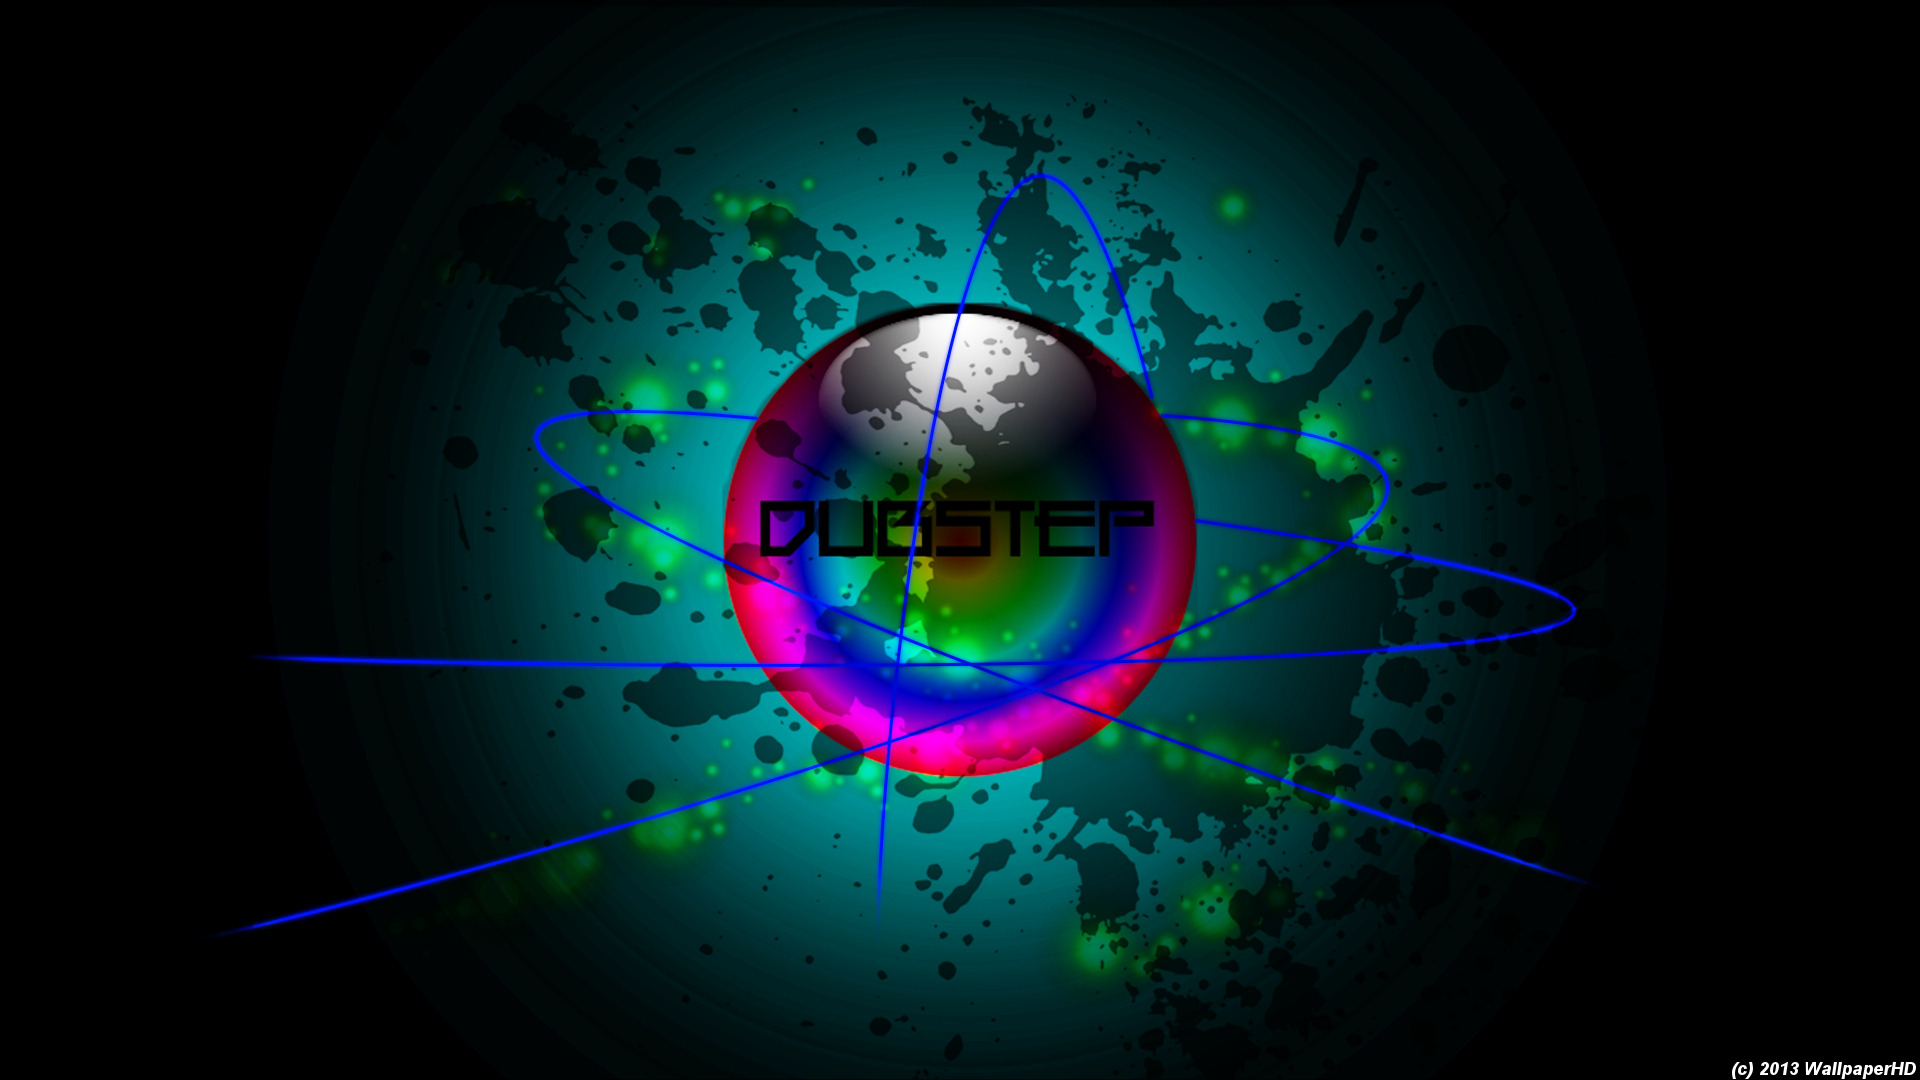 abstract dubstep wallpaper 1080p - photo #10